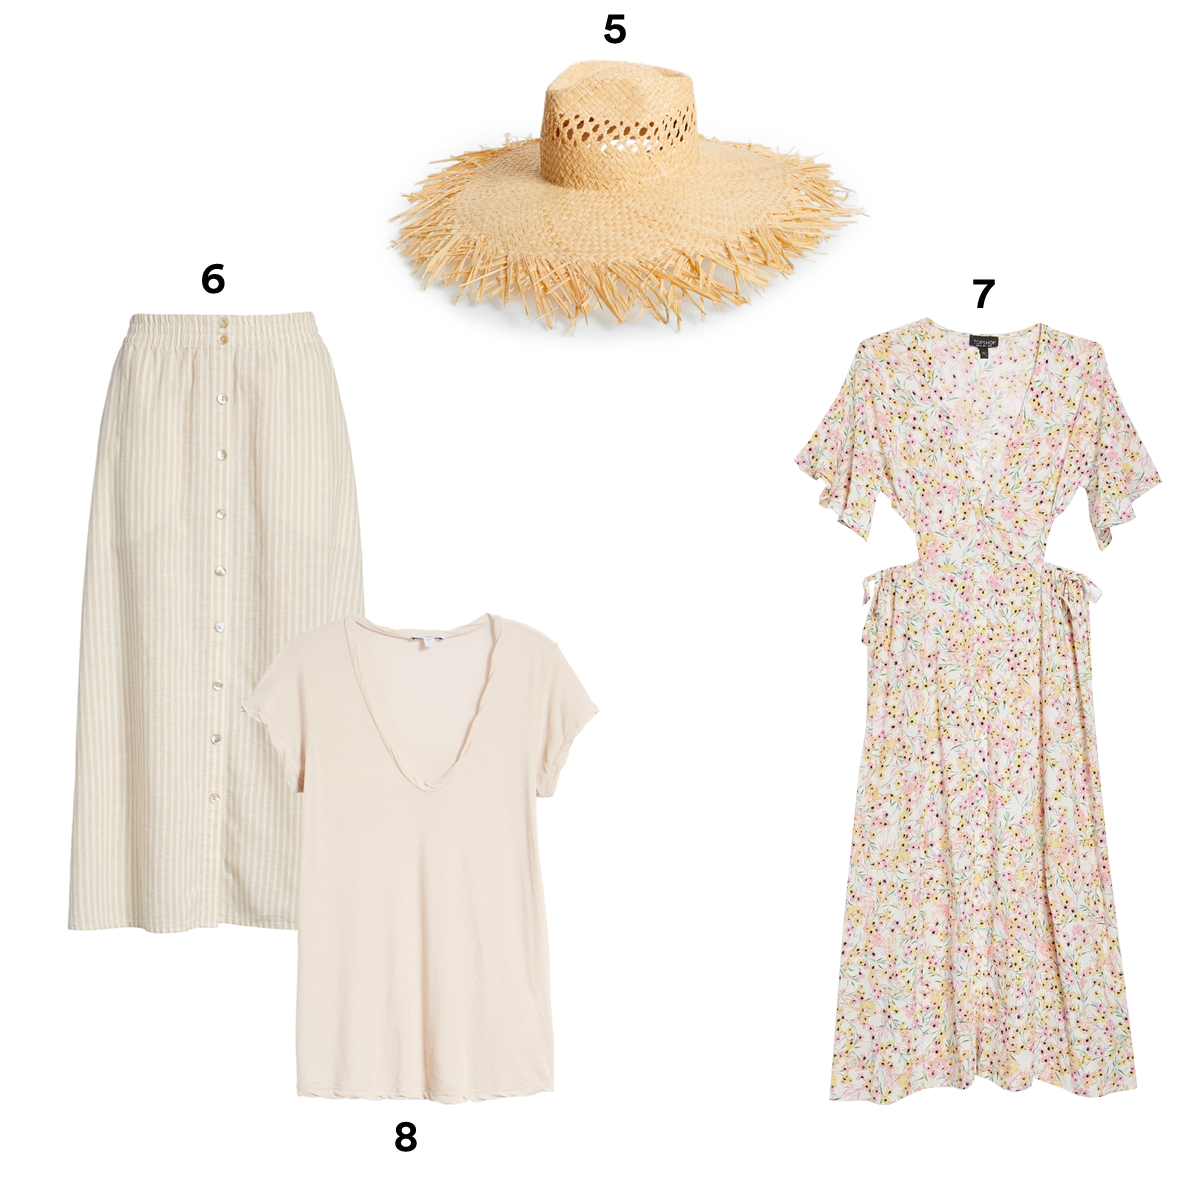 5.) BRIXTON Joanna Fringe Hat, available at Nordstrom. 6.) EILEEN FISCHER Stripe Hemp & Organic Cotton Midi Skirt. 7.) TOPSHOP Ditsy Cut Out Midi Dress. 8.) JAMES PERSE High Gauge Jersey Deep V Tee.